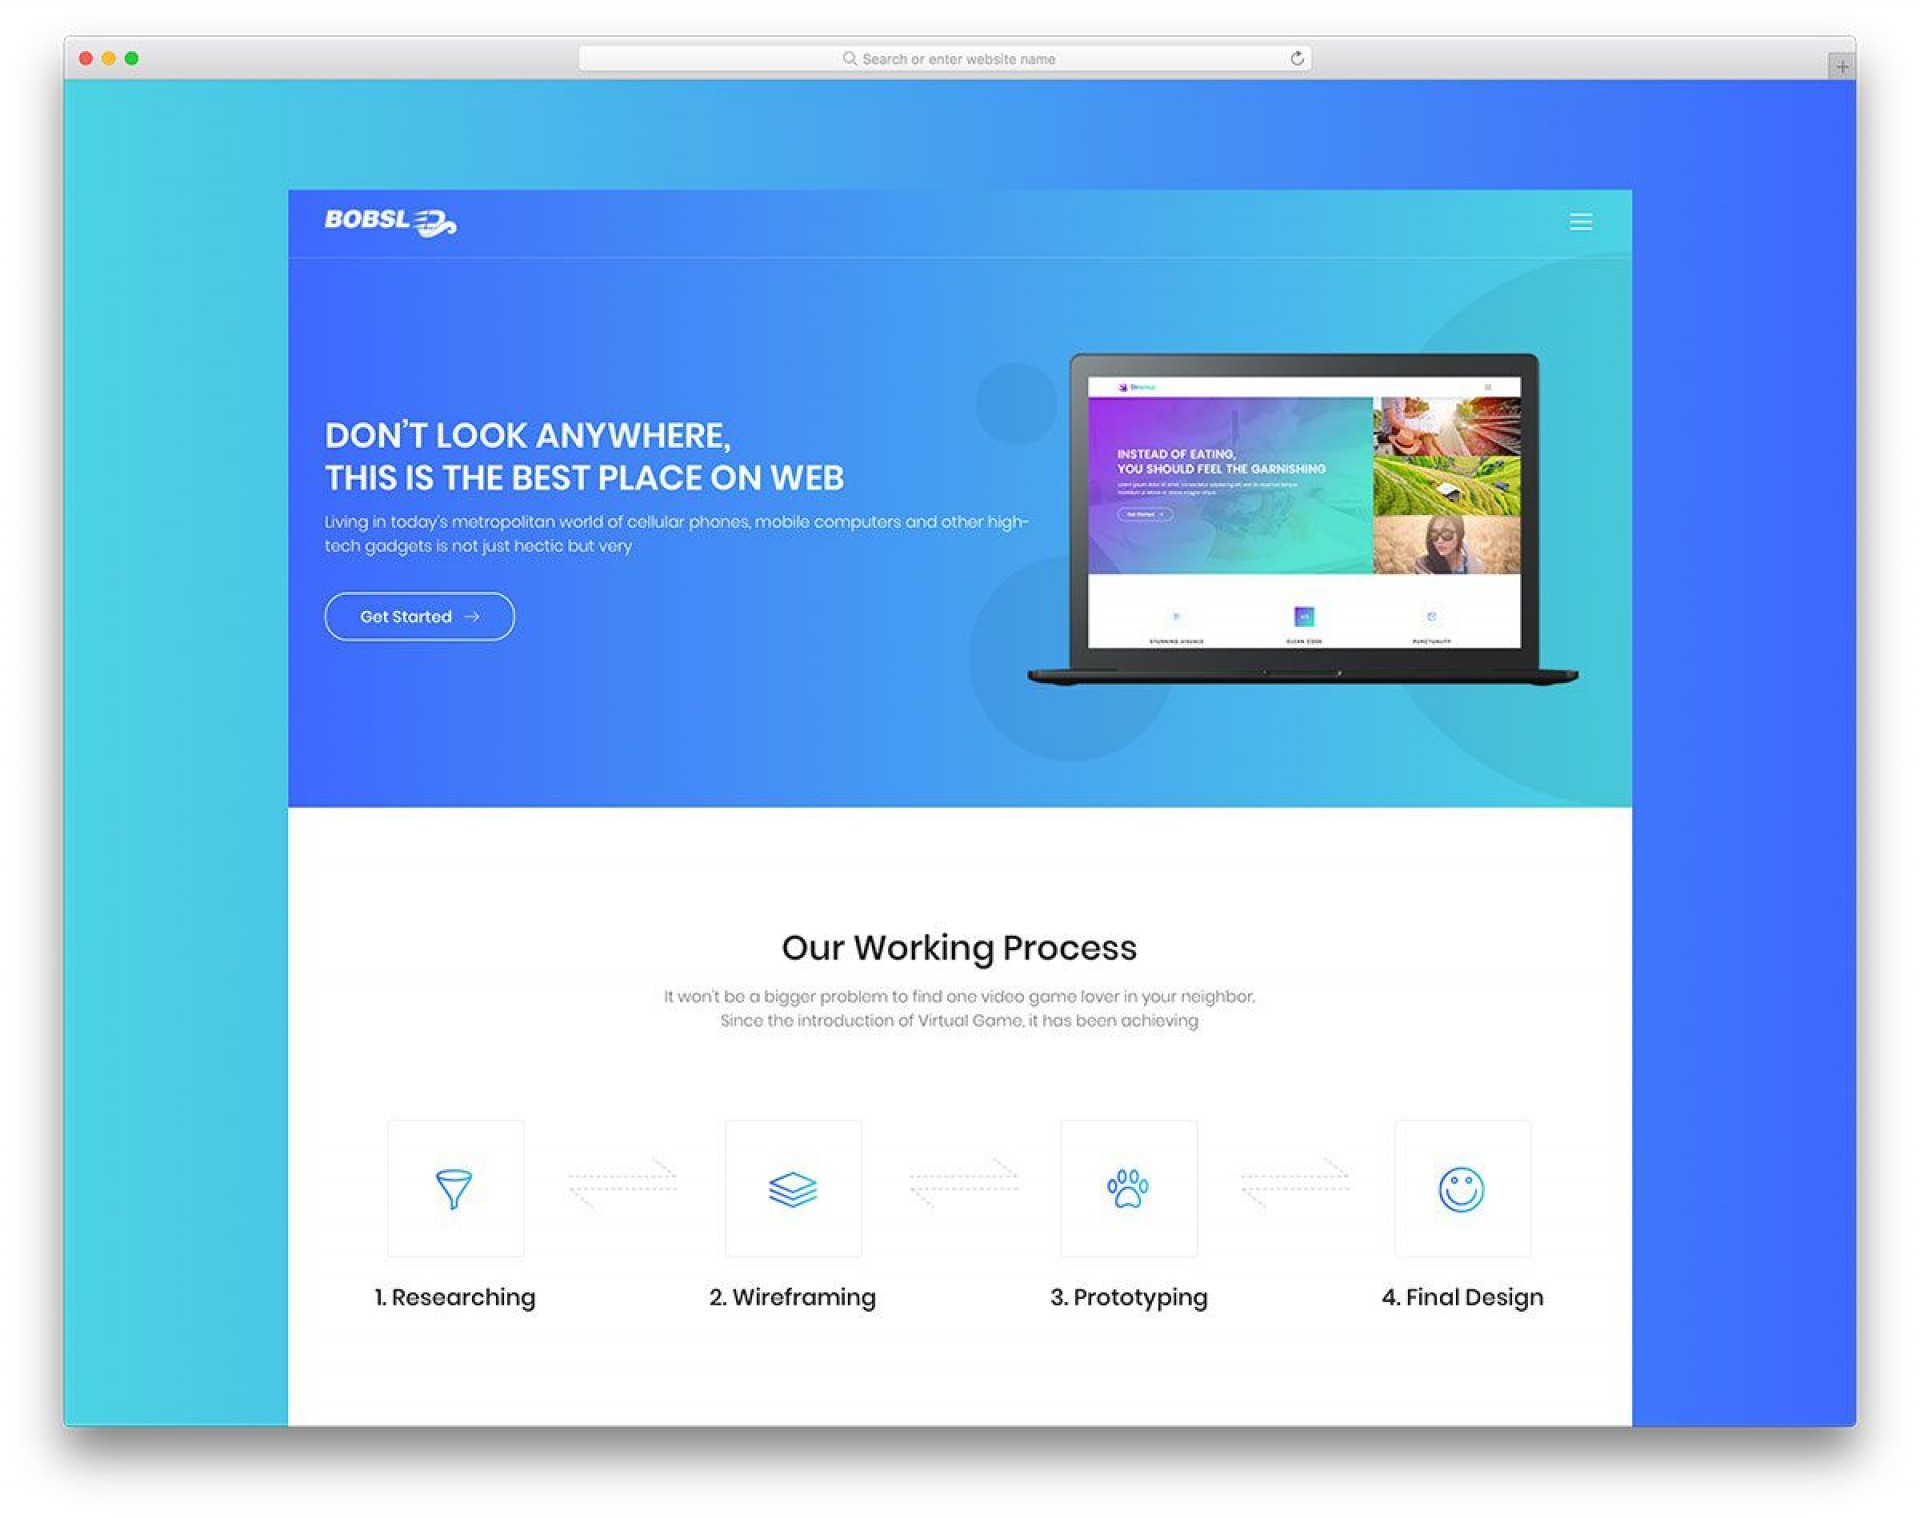 004 Striking Simple Landing Page Template Idea  Html Bootstrap Free1920